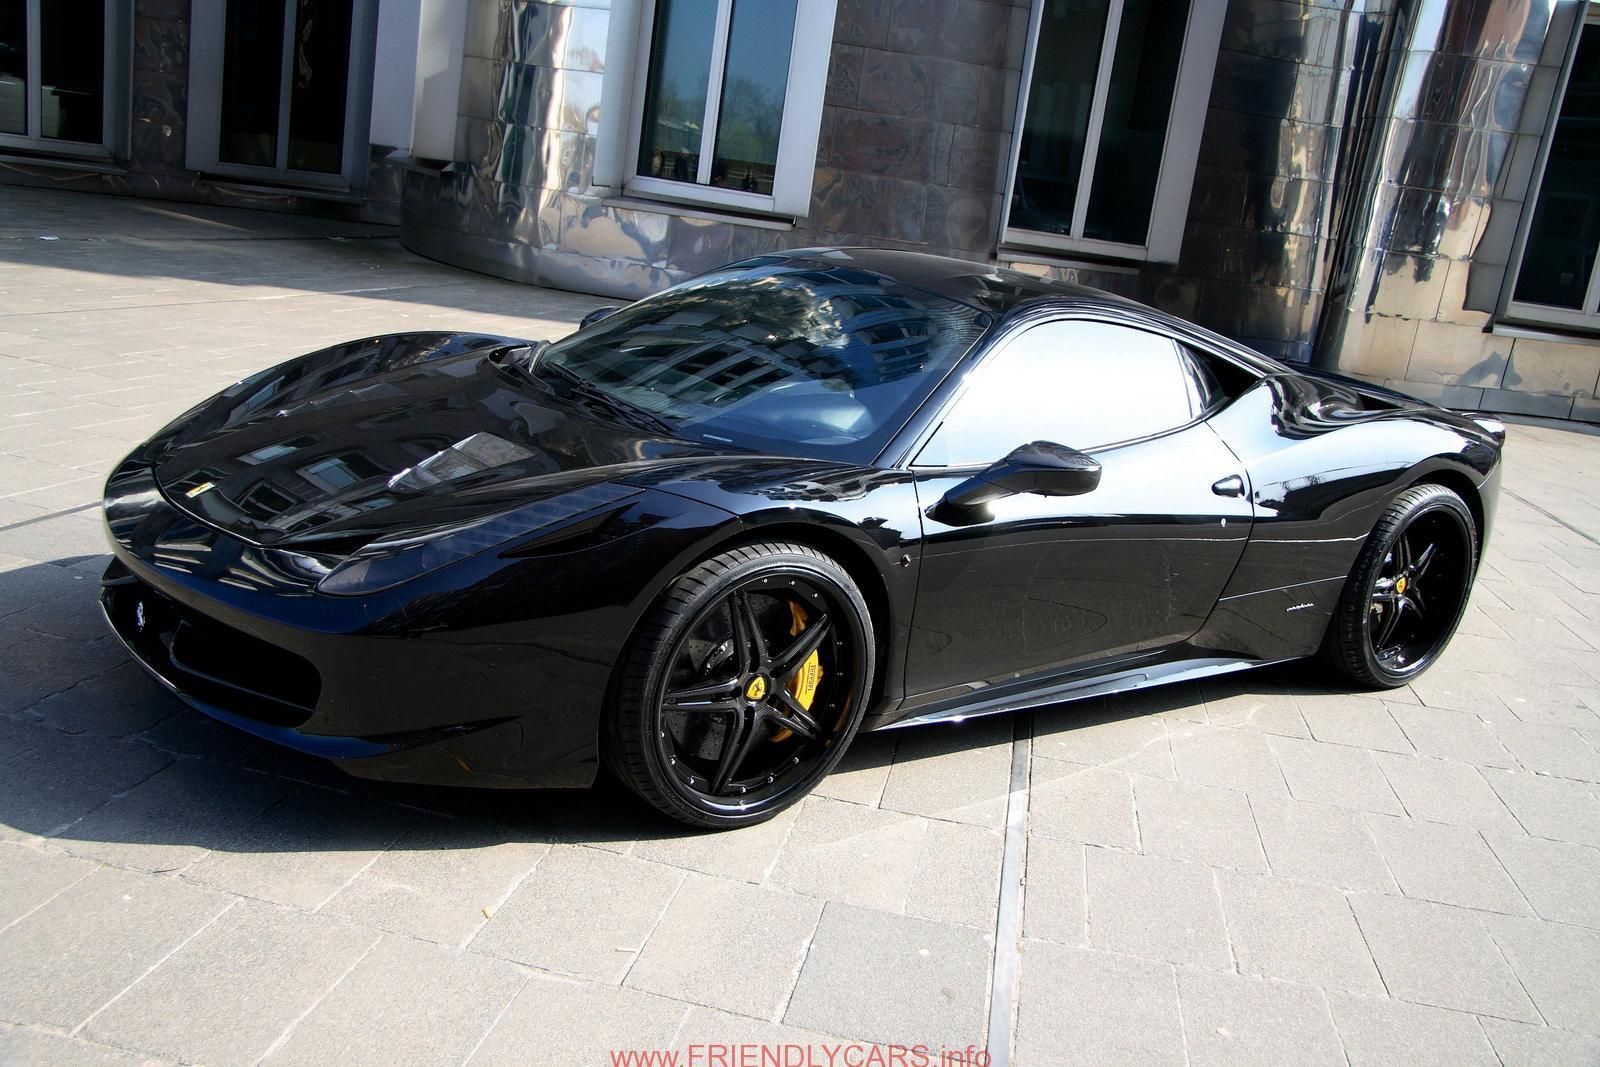 Awesome Ferrari 458 Spider Matte Black Car Images Hd Wallpaper 2 Wallchips